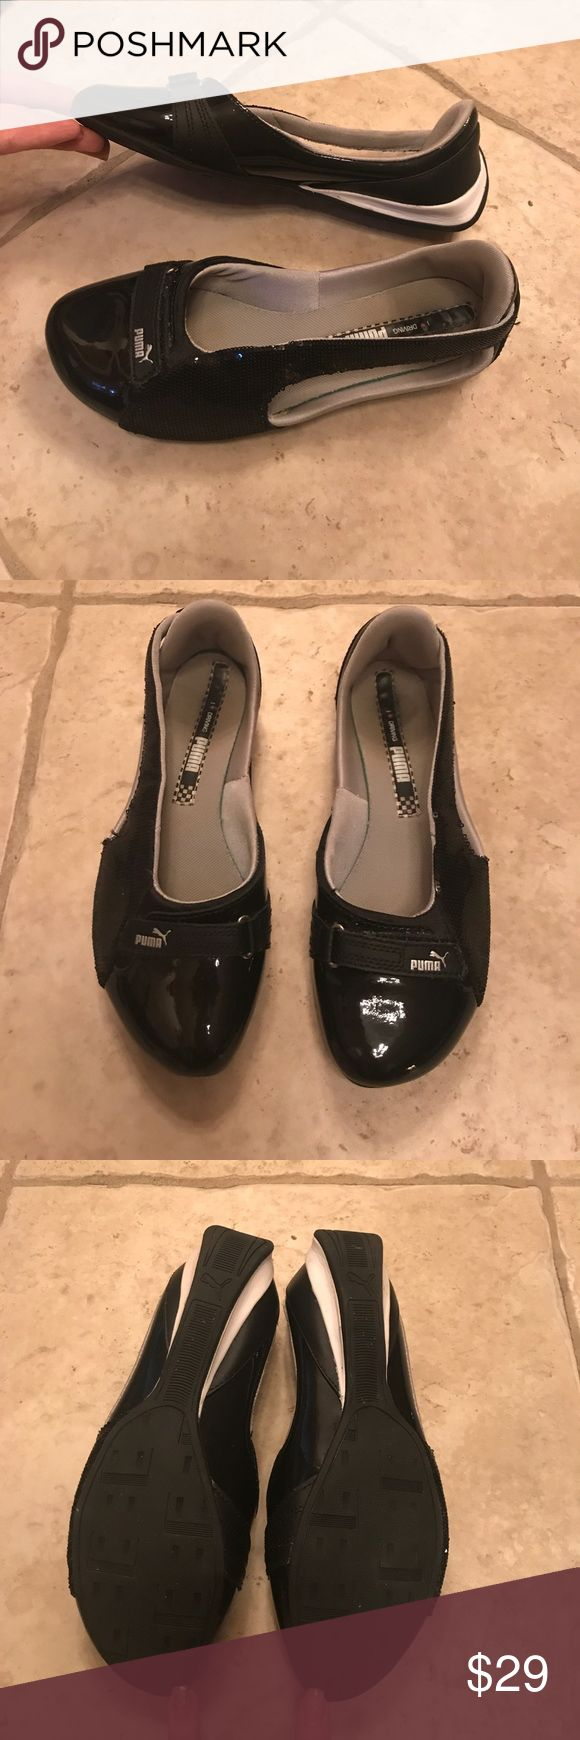 Puma Ballerina flats. Black and White. Size 8. Run slightly small, feel like size 7.5.  Exceptionally comply, slightly used. Puma Shoes Athletic Shoes